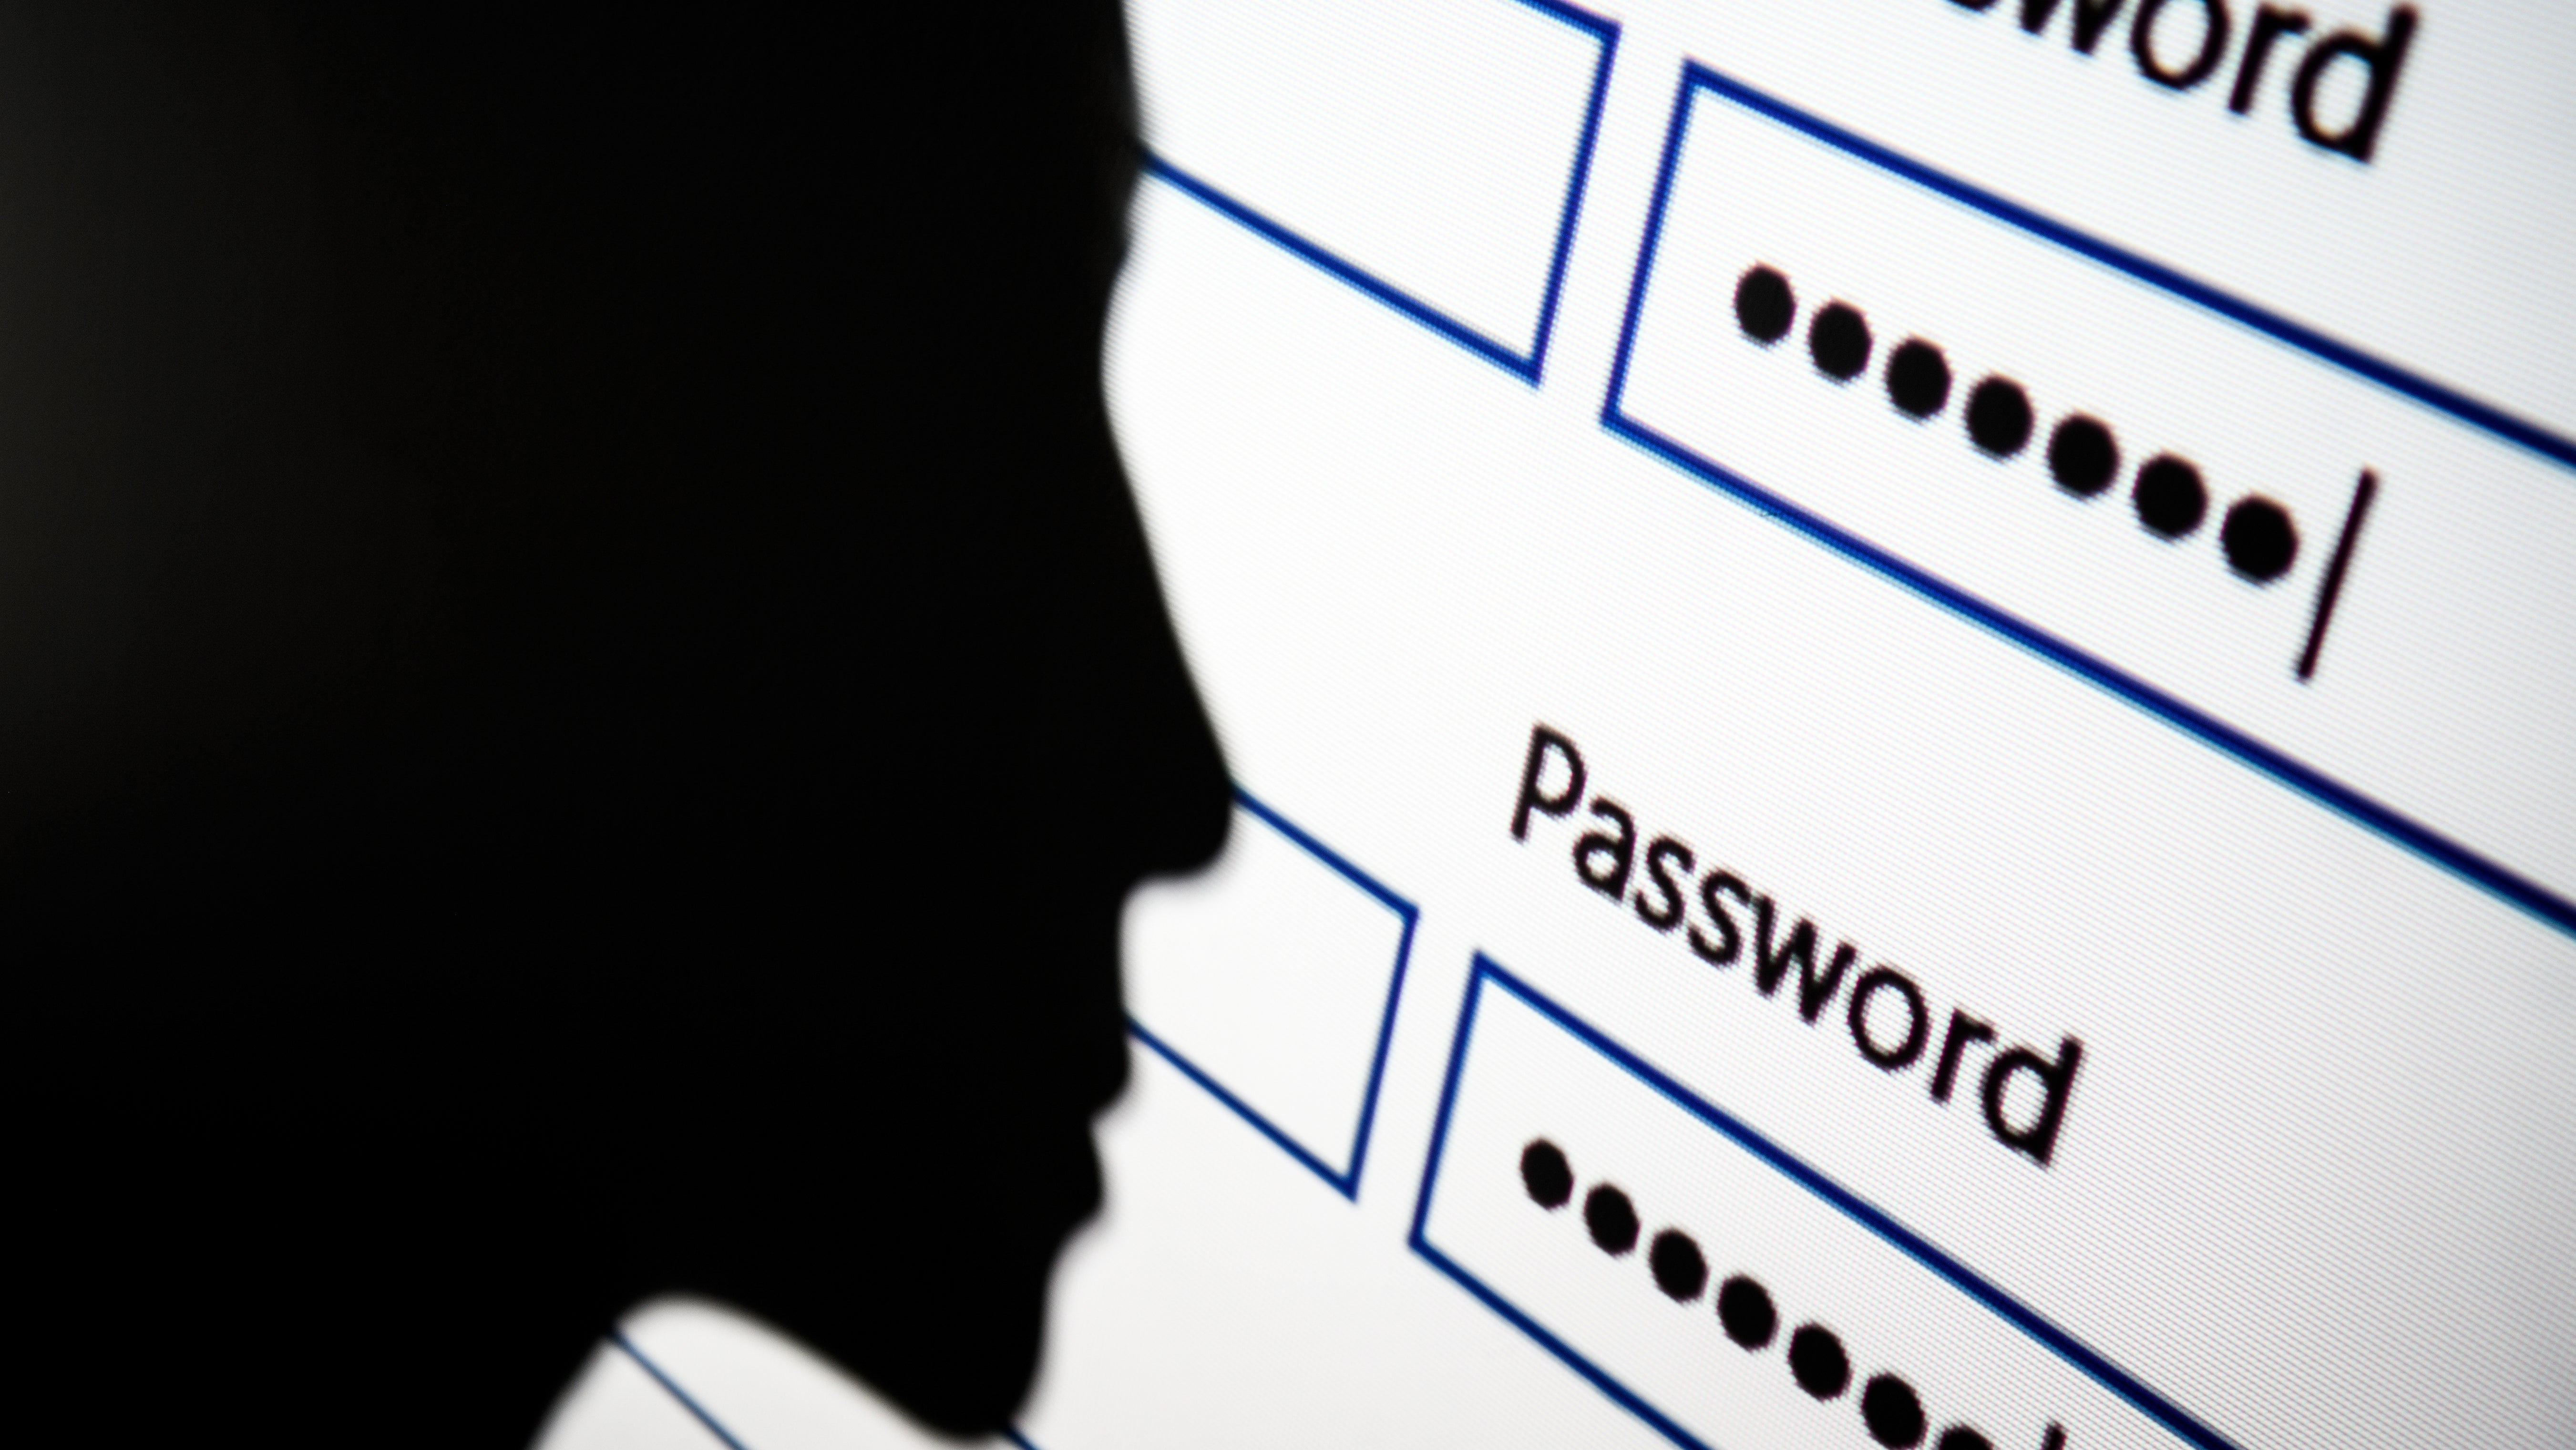 Mother Of All Breaches Exposes 773 Million Emails, 21 Million Passwords